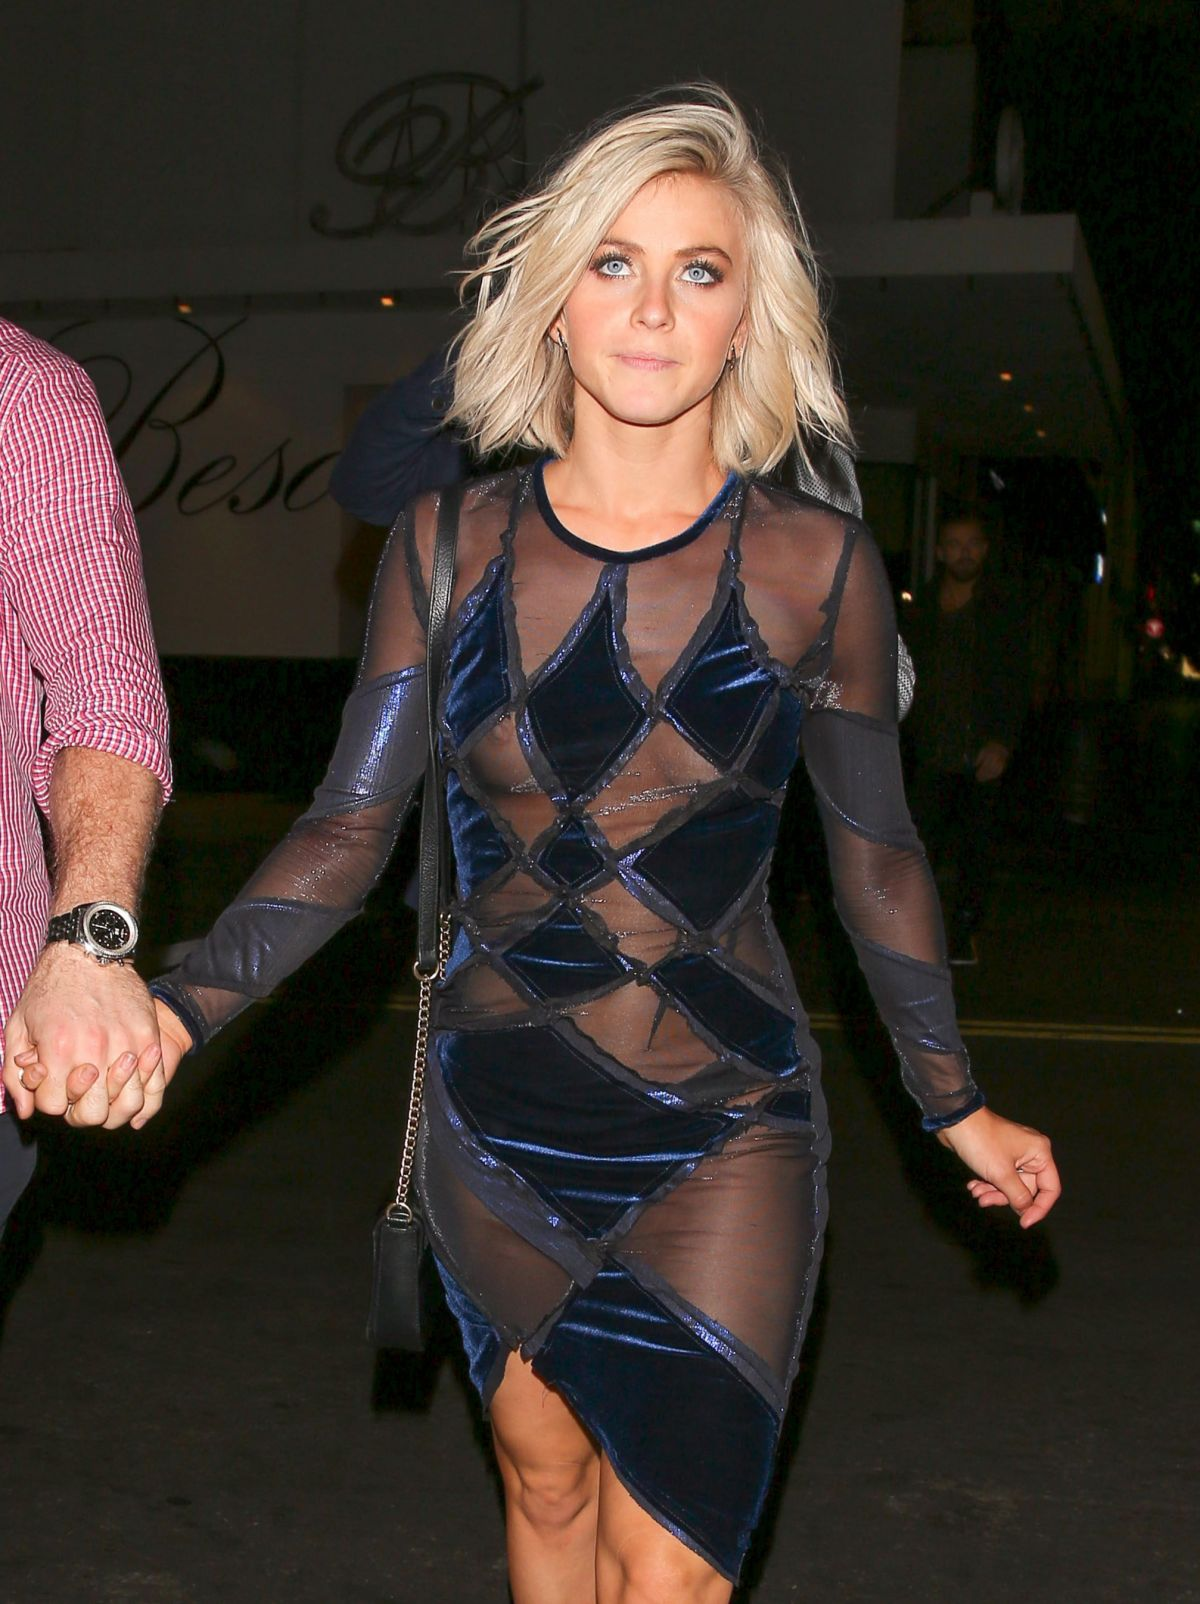 Julianne Hough Dating Dane Cook?